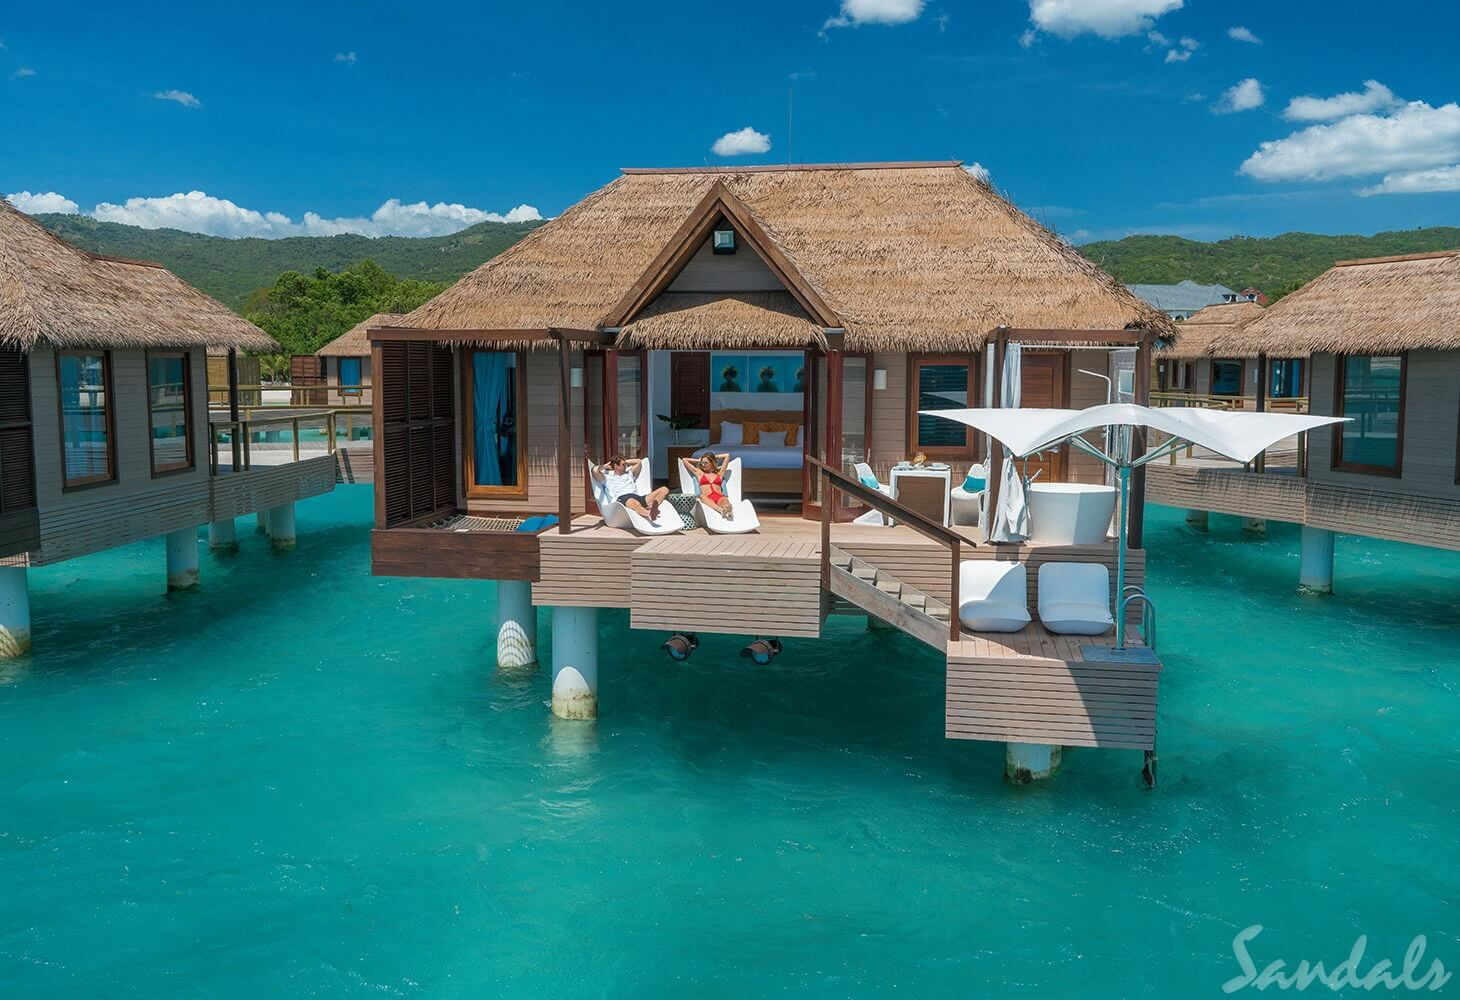 Sandals South Coast Overwater Bungalow